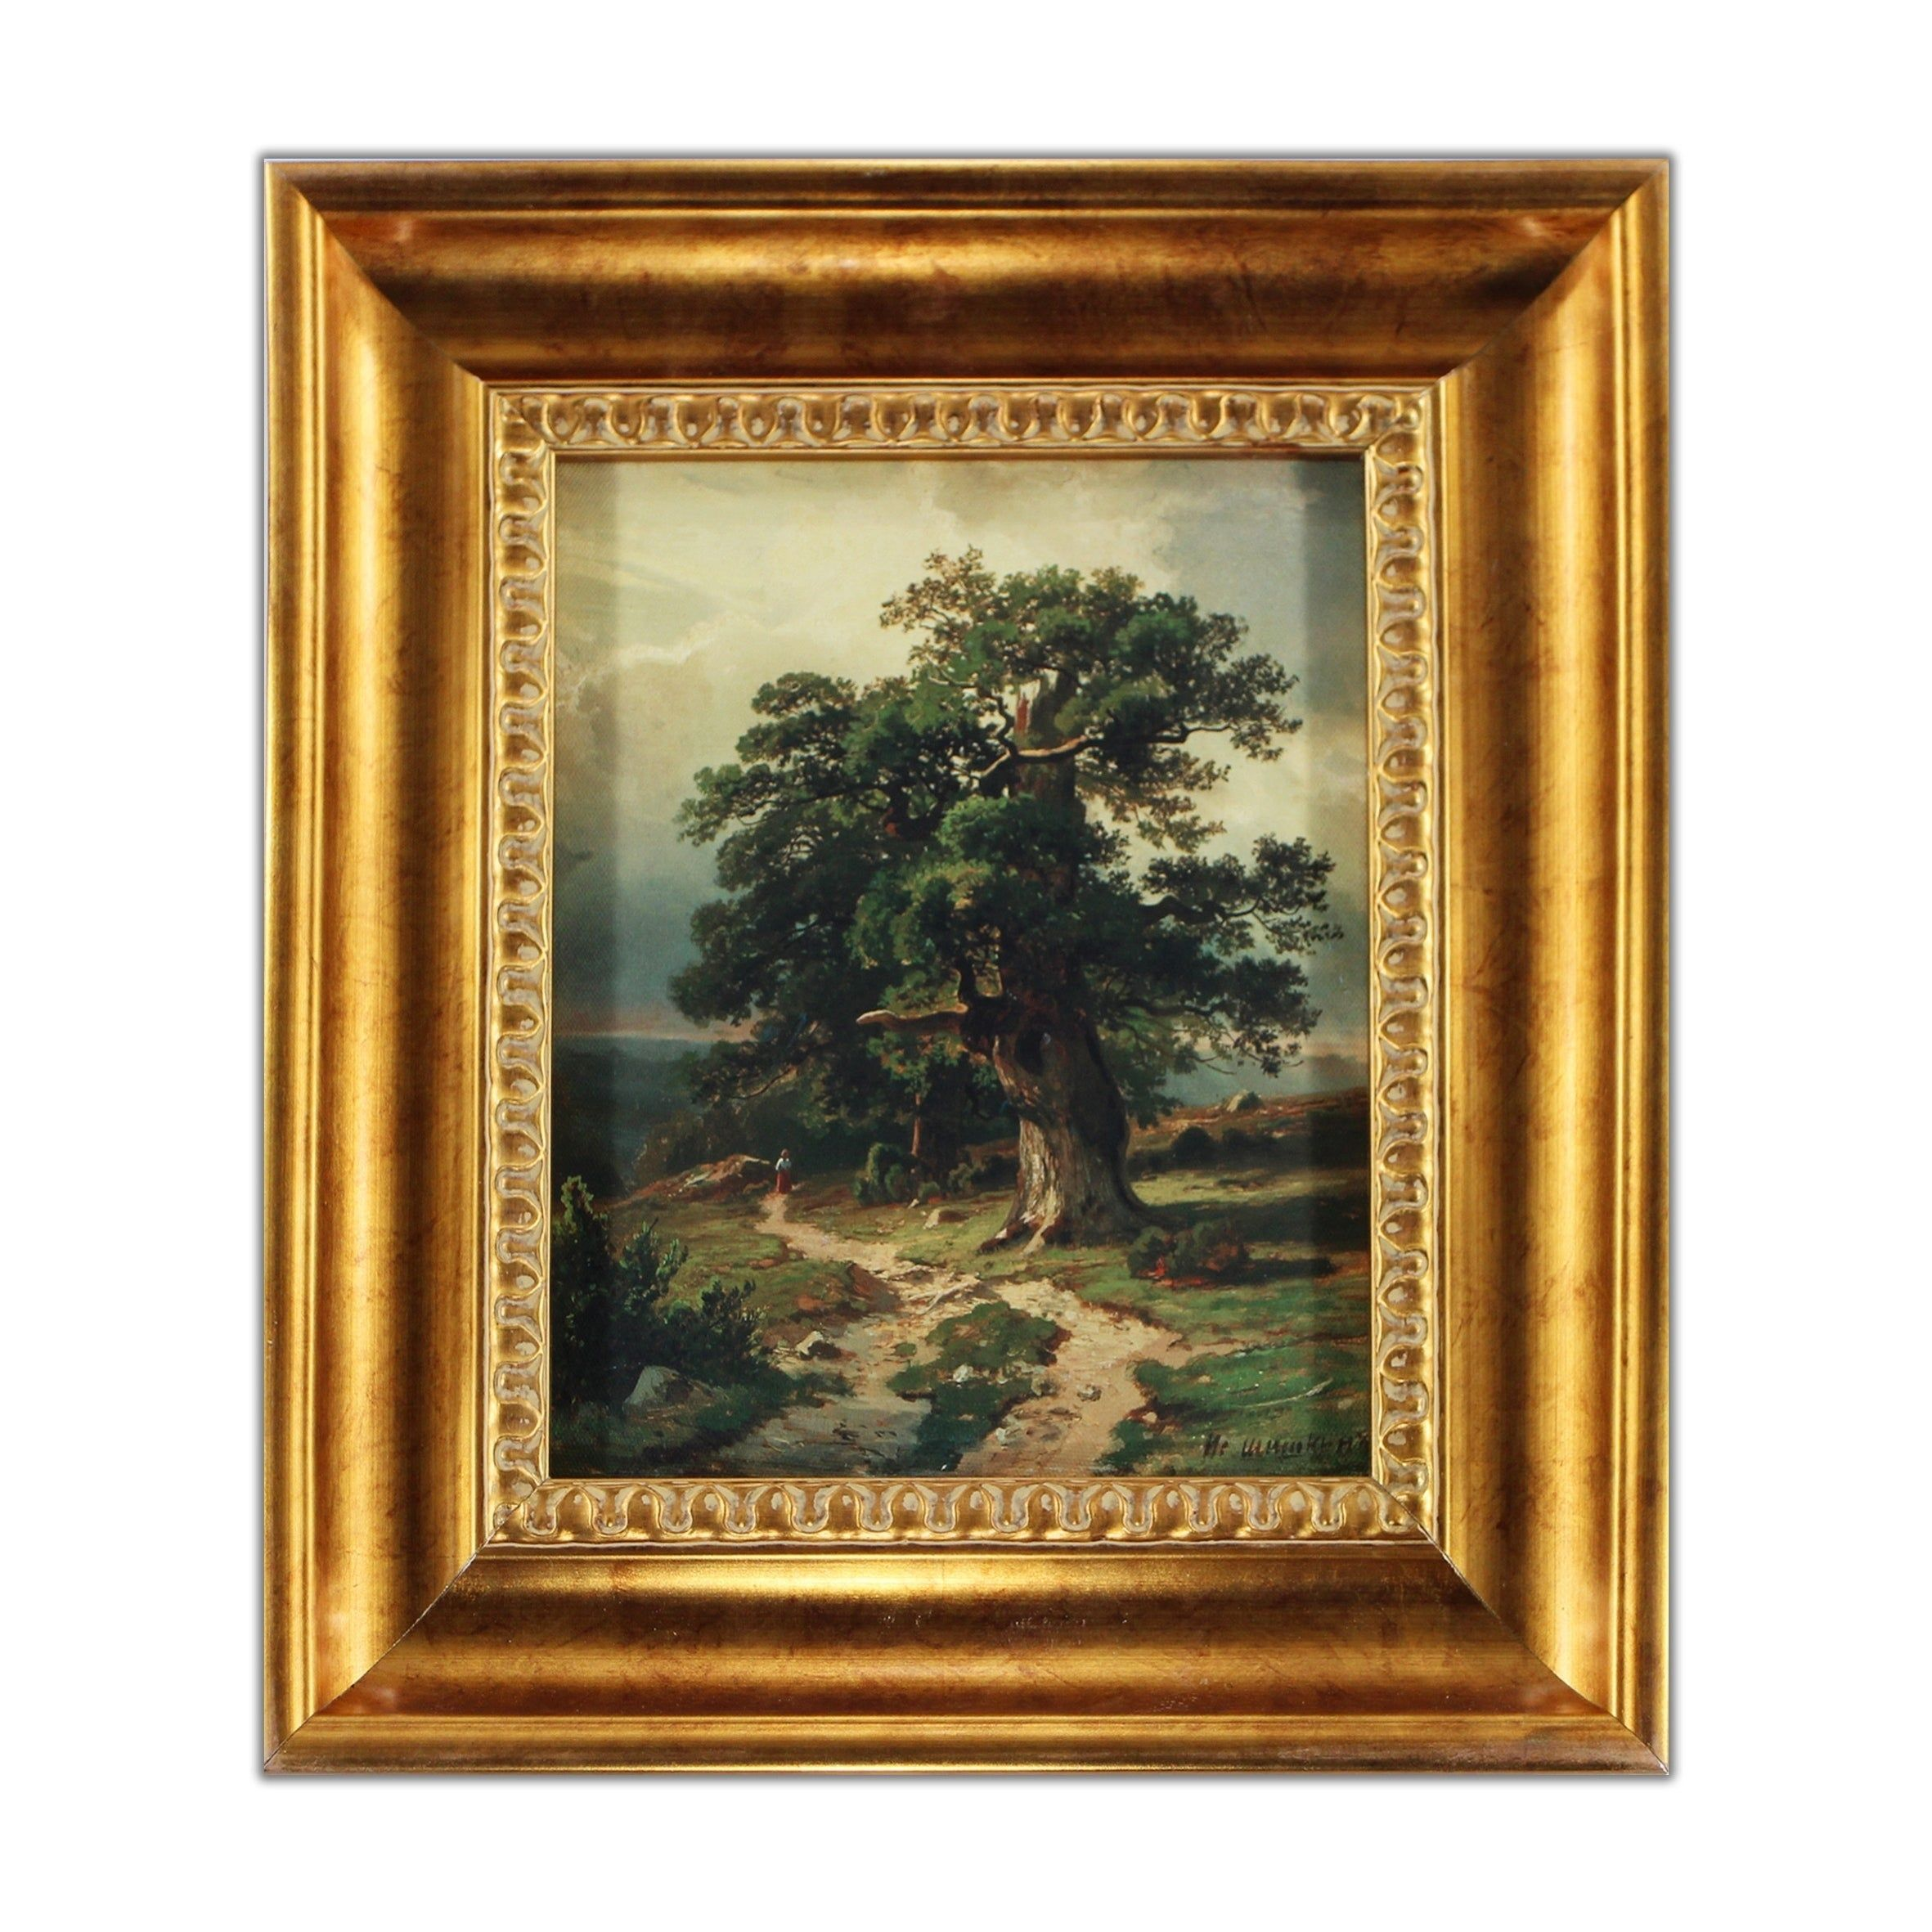 Pin By On Art In 2020 Painting Frames Painting Vintage Oil Painting